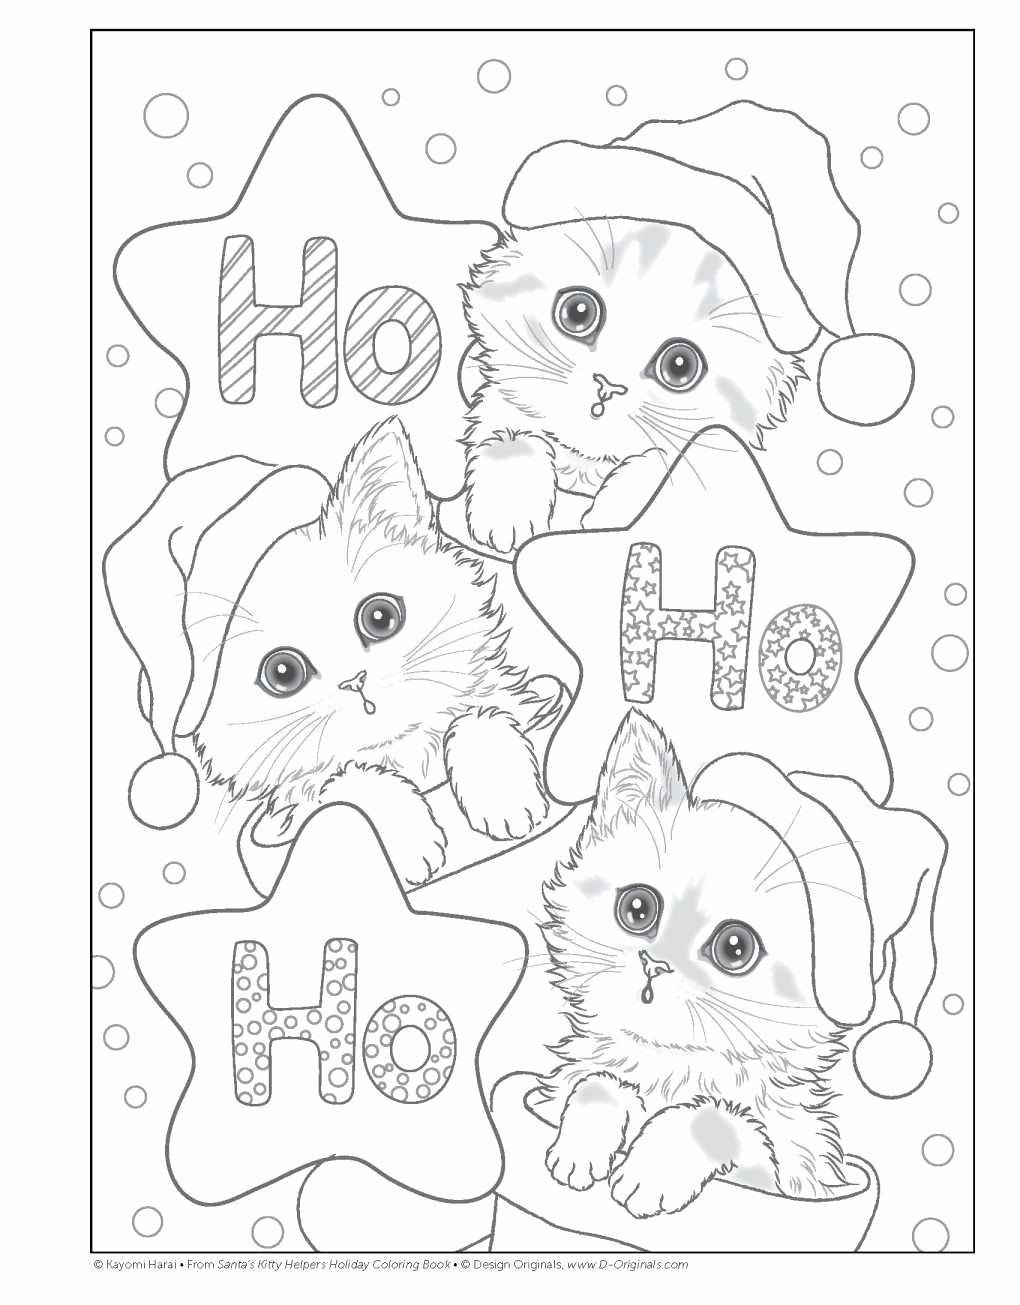 Kitten Coloring Pages For Kids Coloring Pages Coloring Pages Free Printable Kitten Sheets Holiday Coloring Book Kitty Coloring Cat Coloring Page